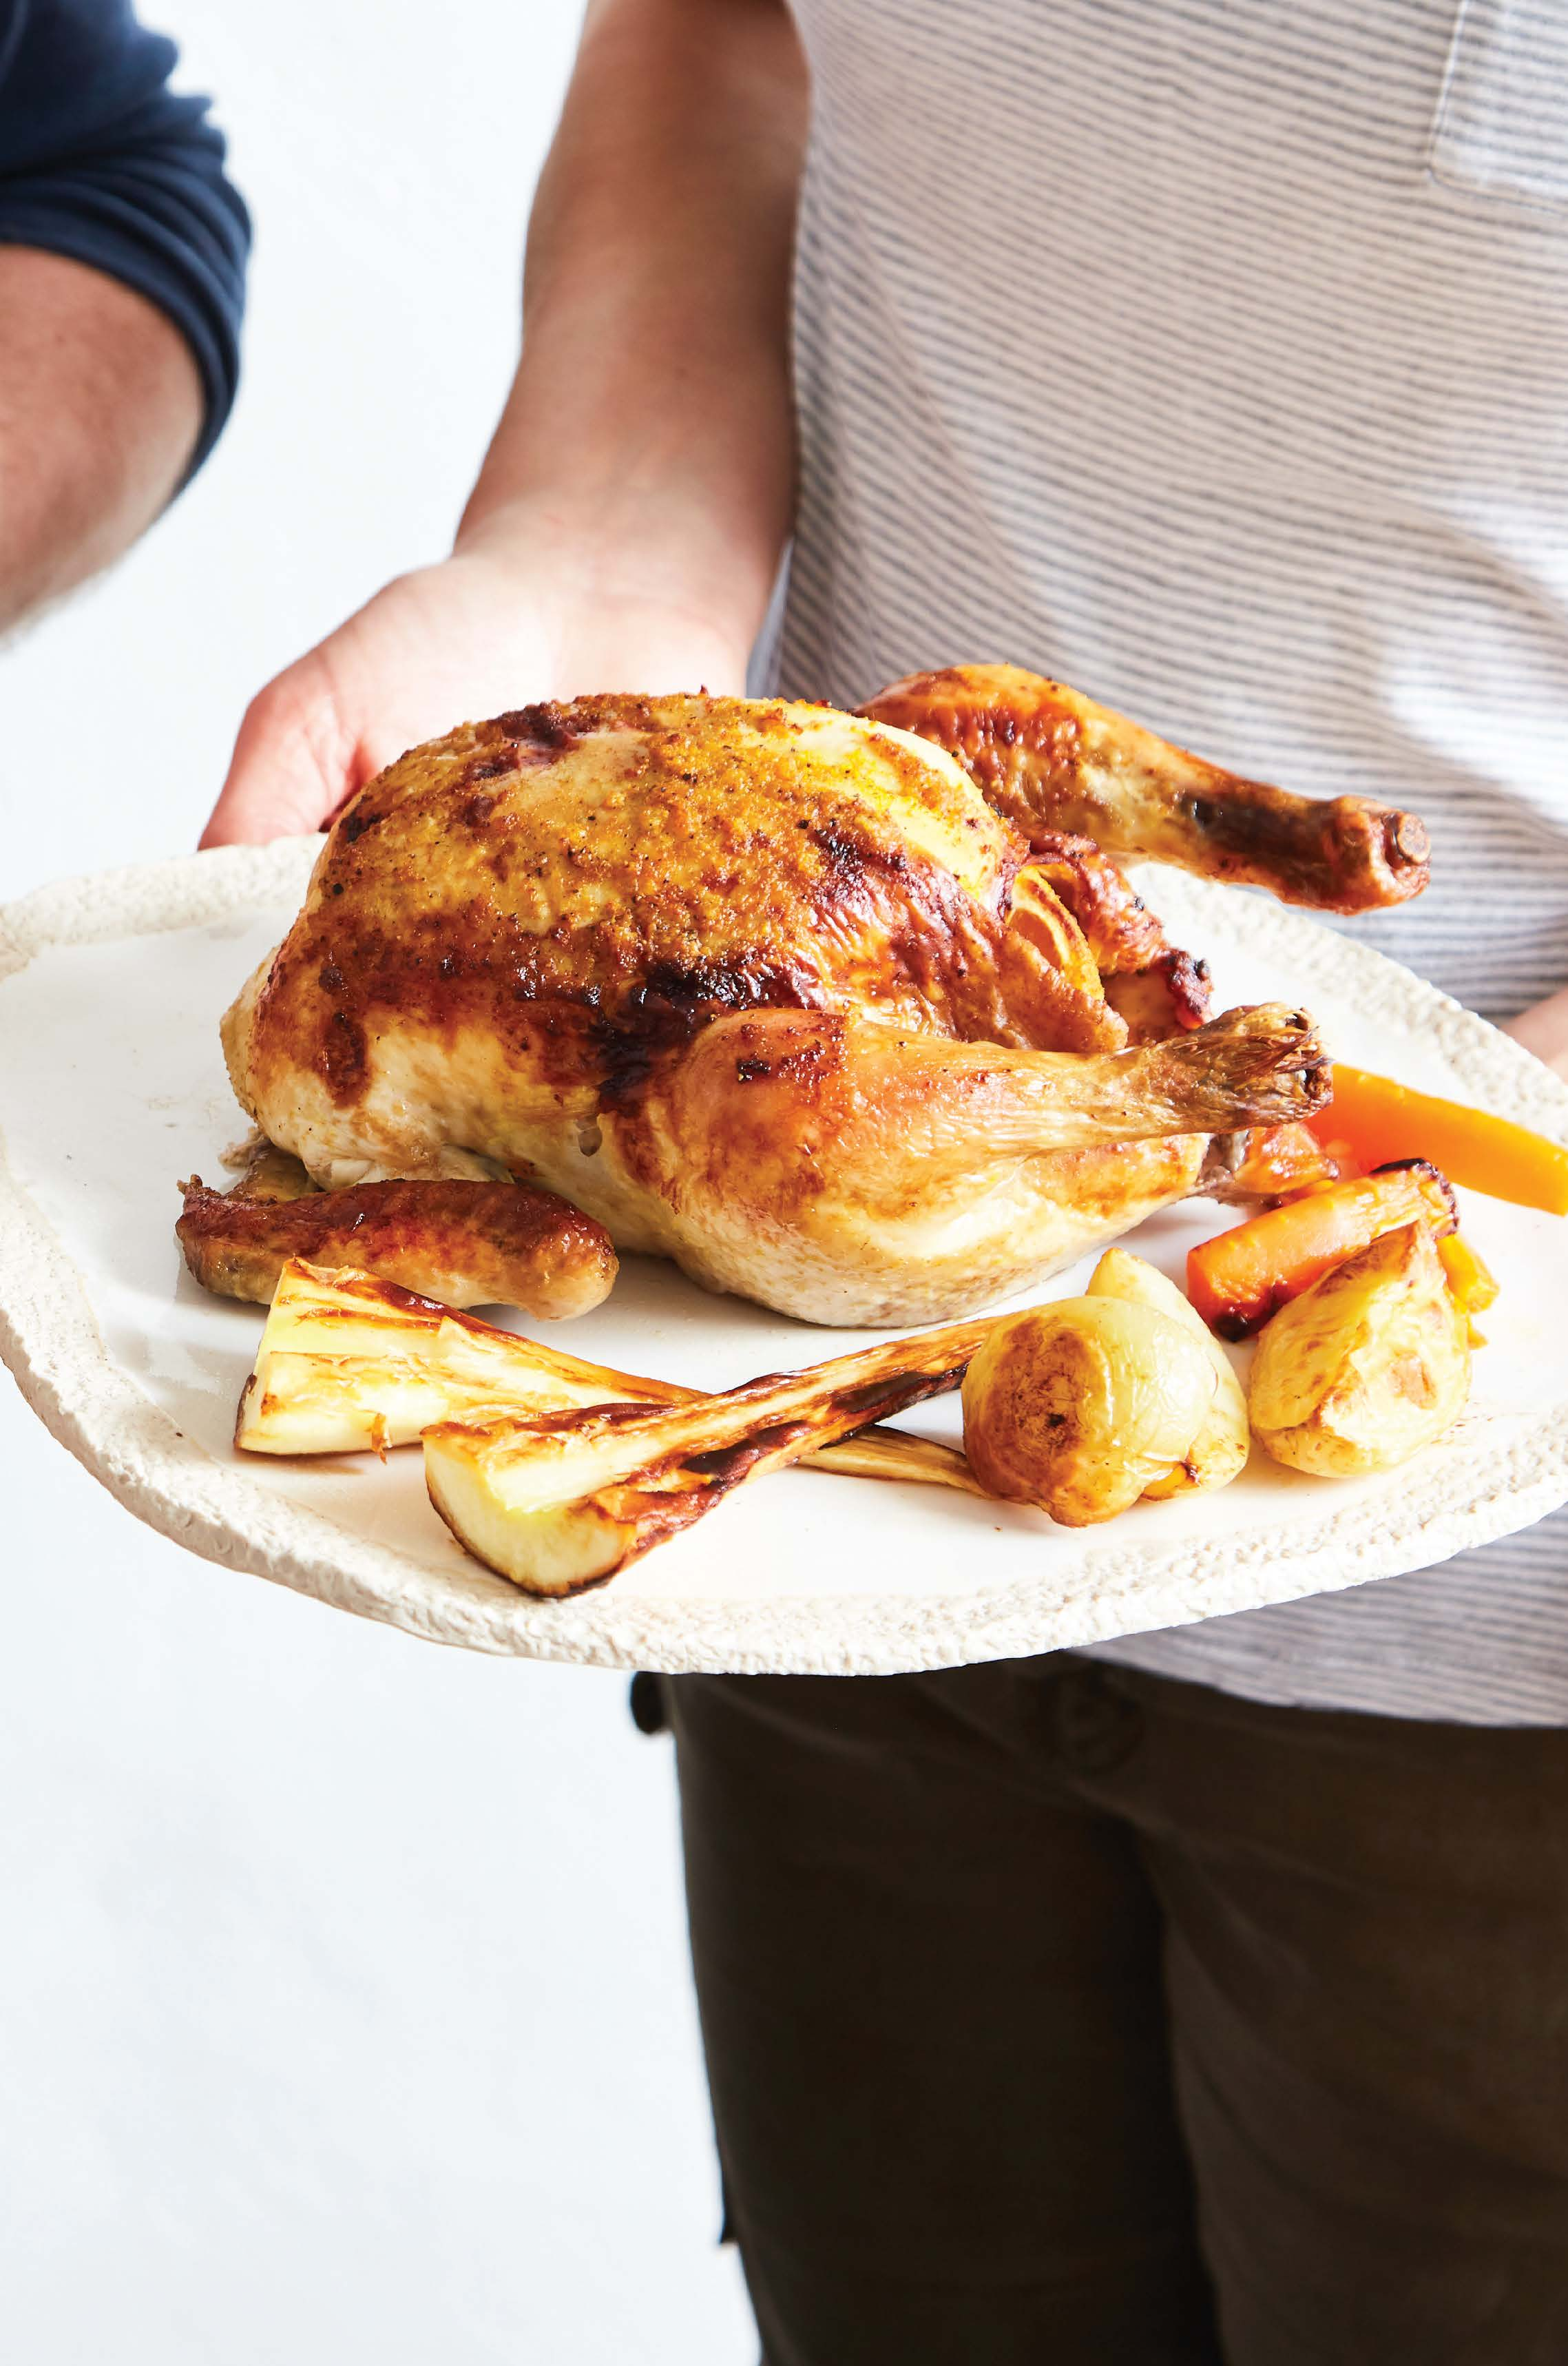 Roast chicken with orange butter rub, roasted vegetables and creamy gravy